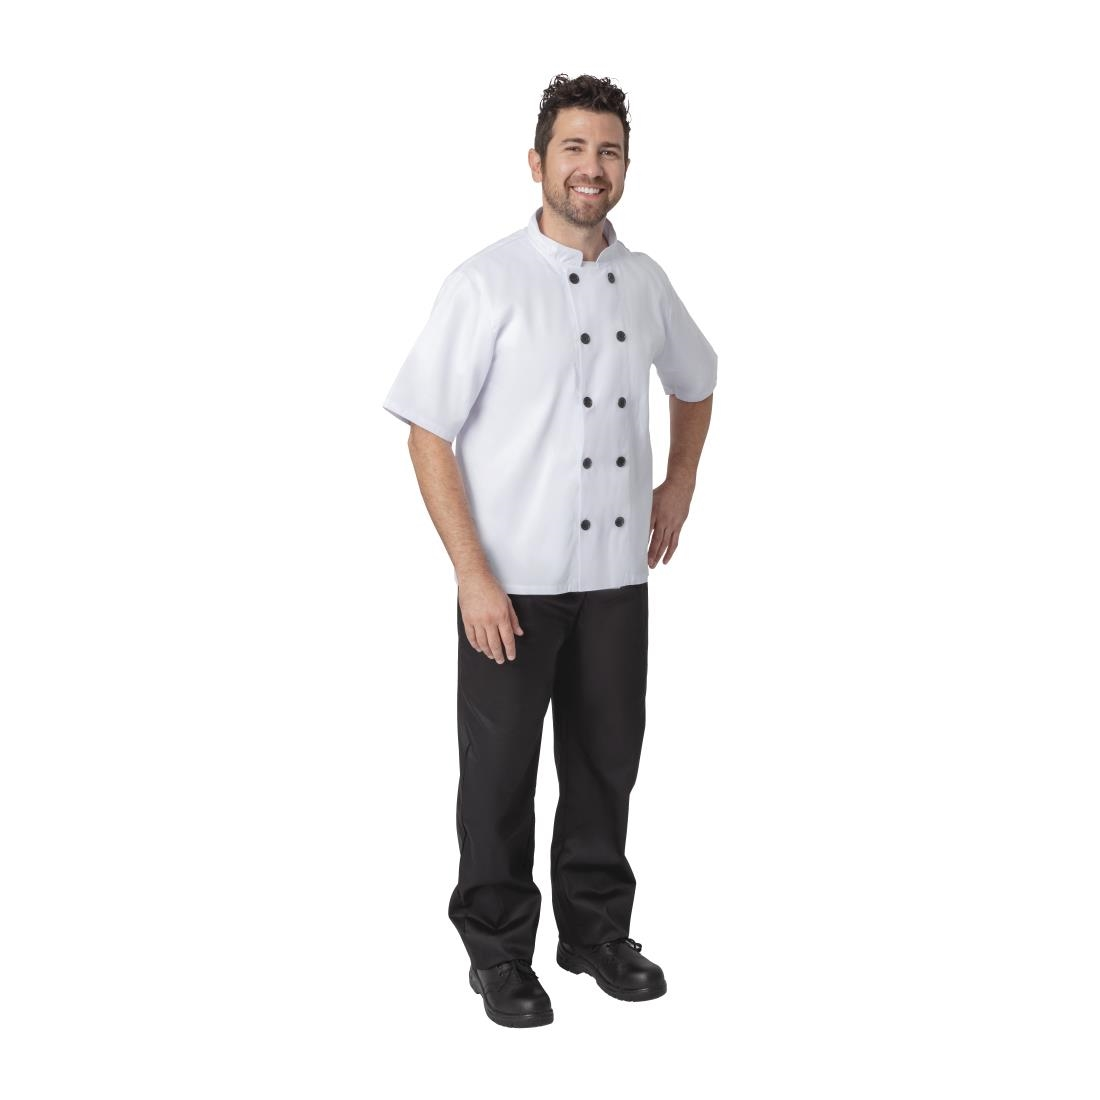 Click to view product details and reviews for Nisbets Essentials Short Sleeve Chefs Jacket White L Pack Of 2 Pack Of 2.